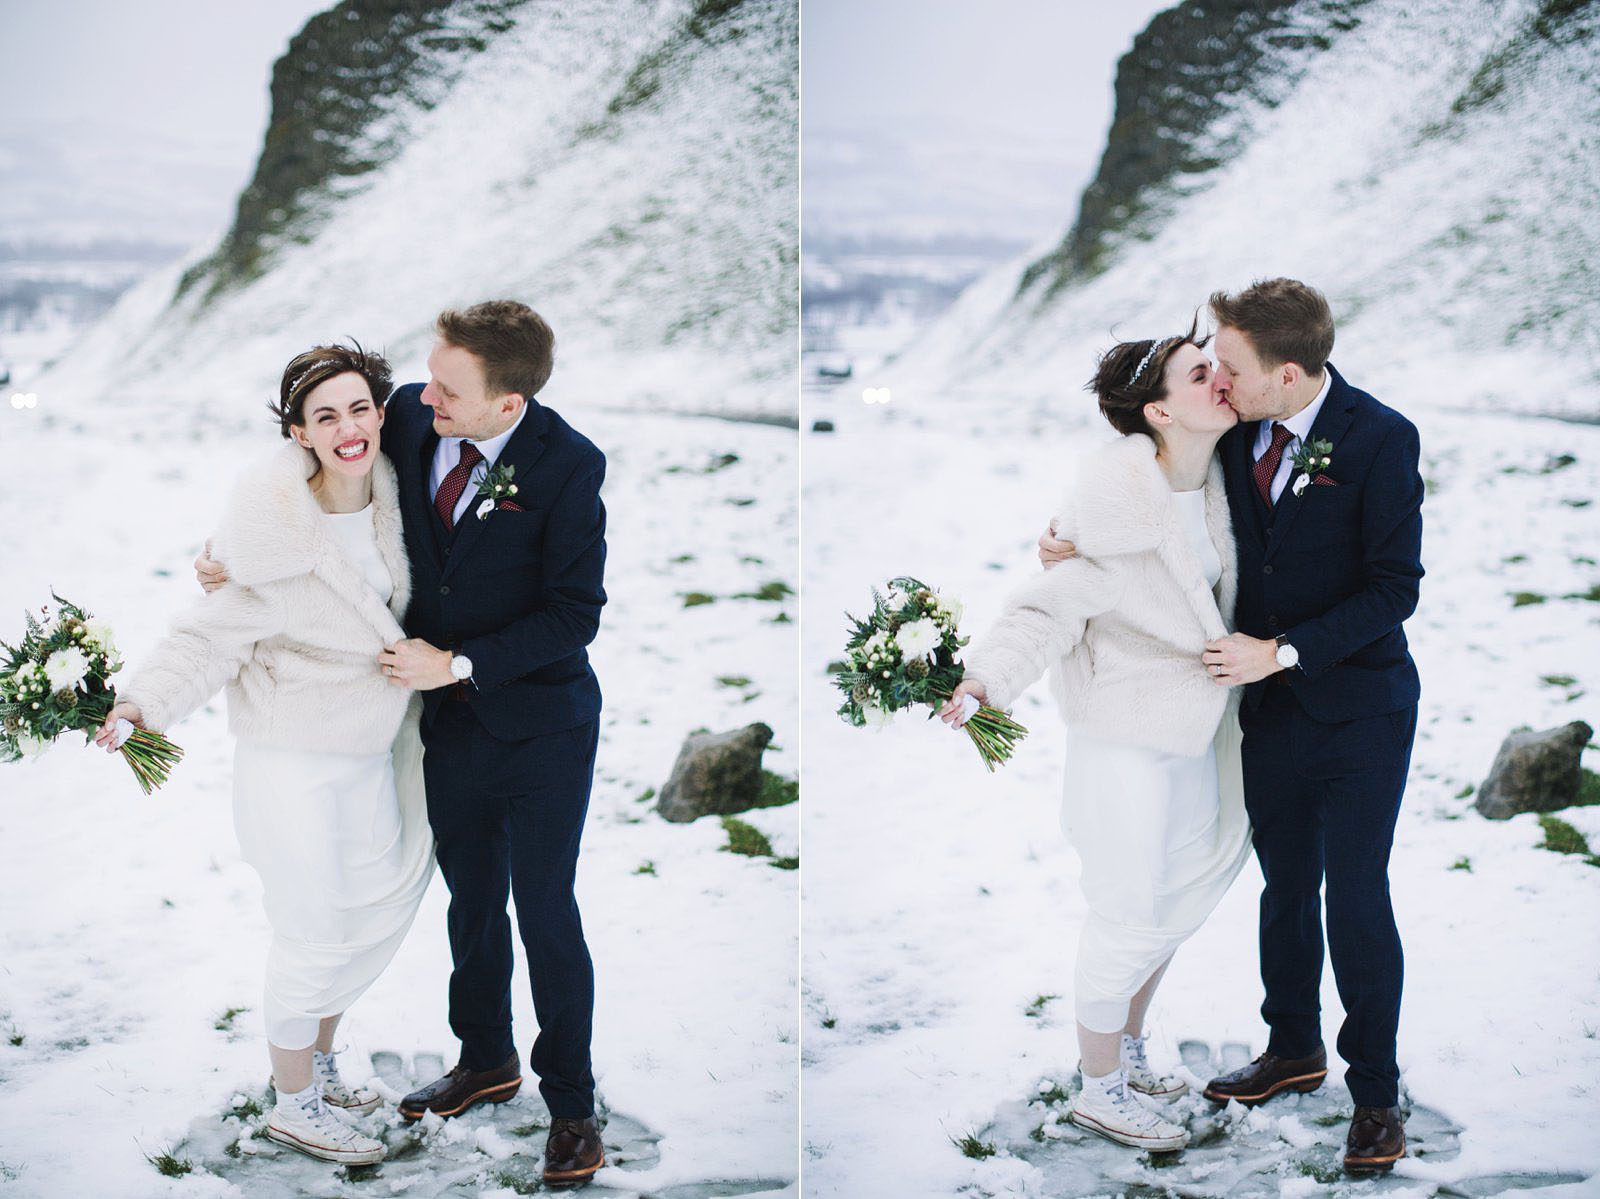 snow wedding photos